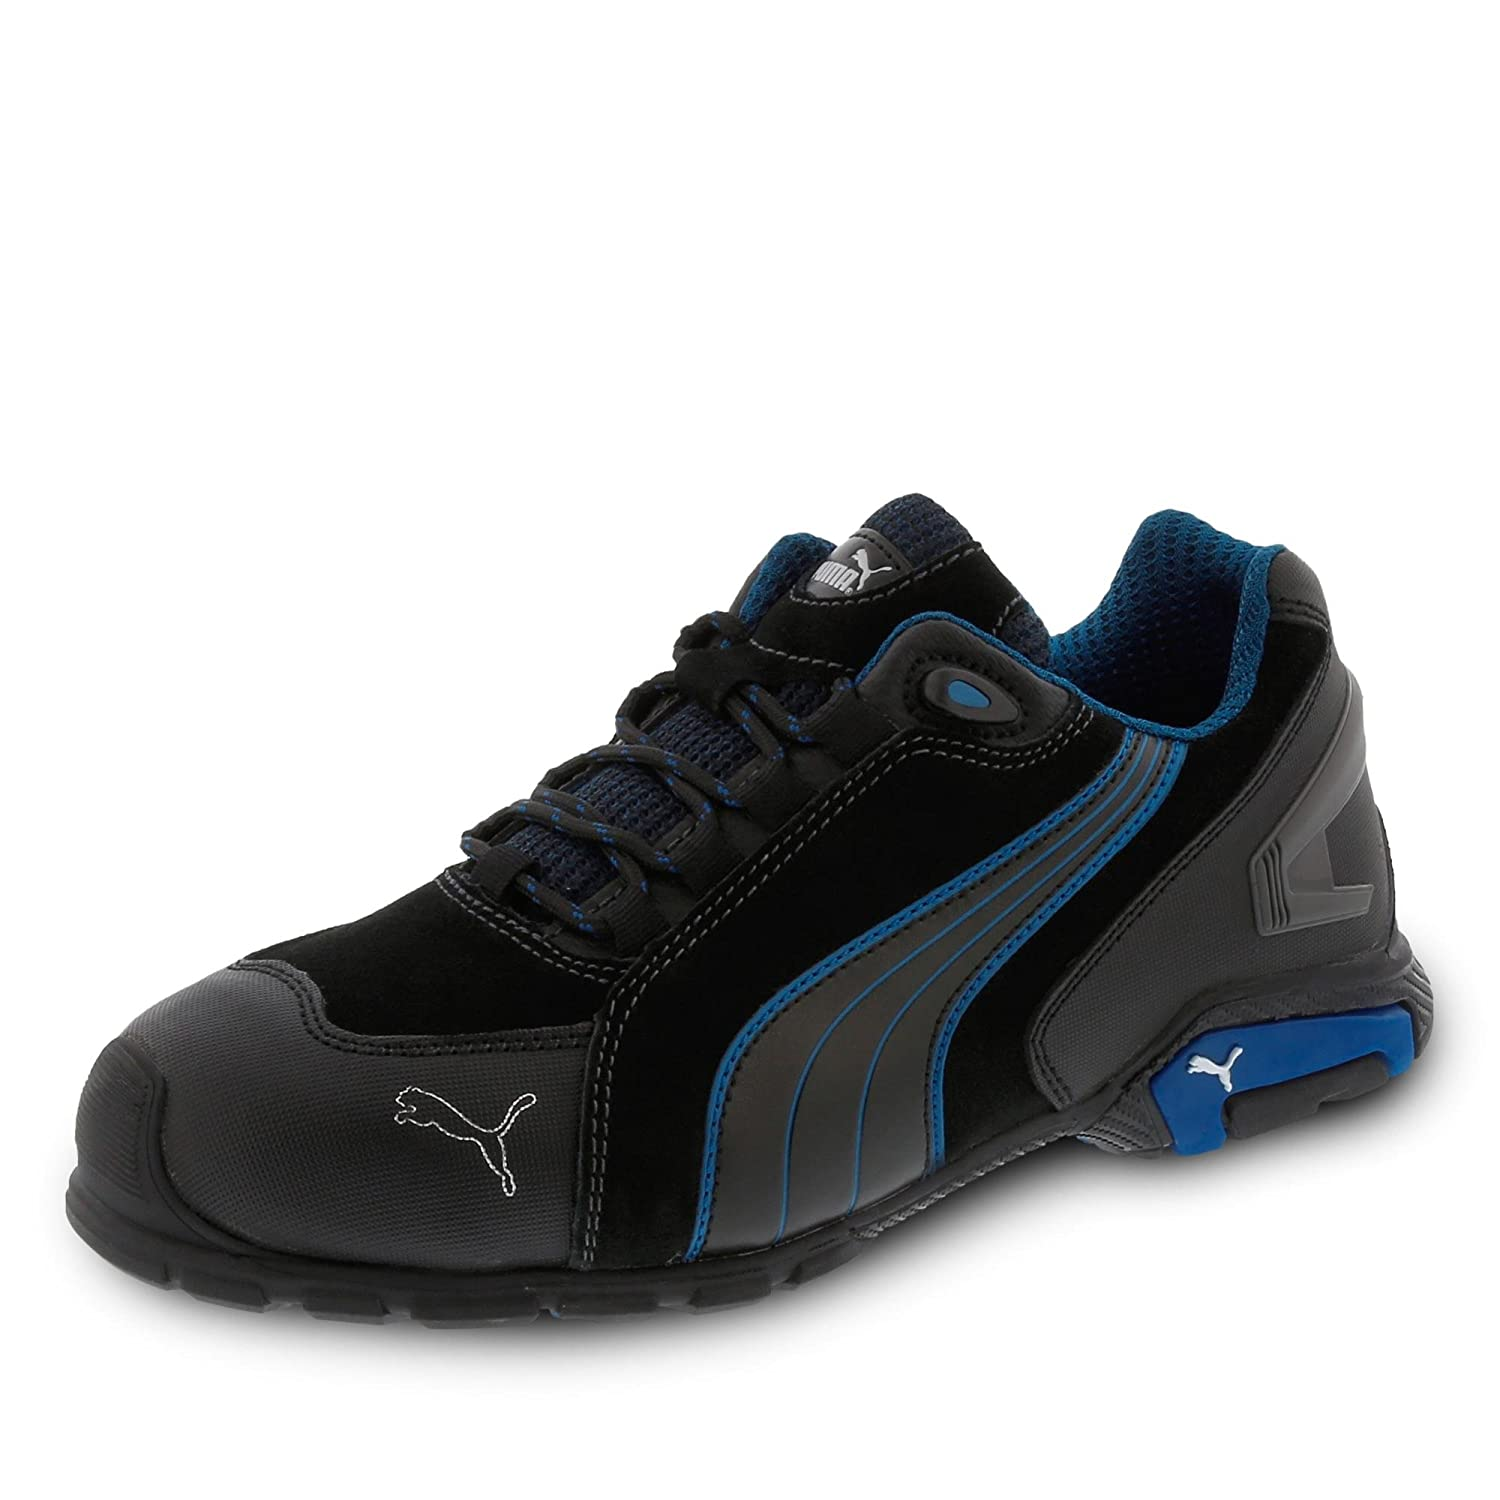 Puma 642750 256 39 Safety Shoes